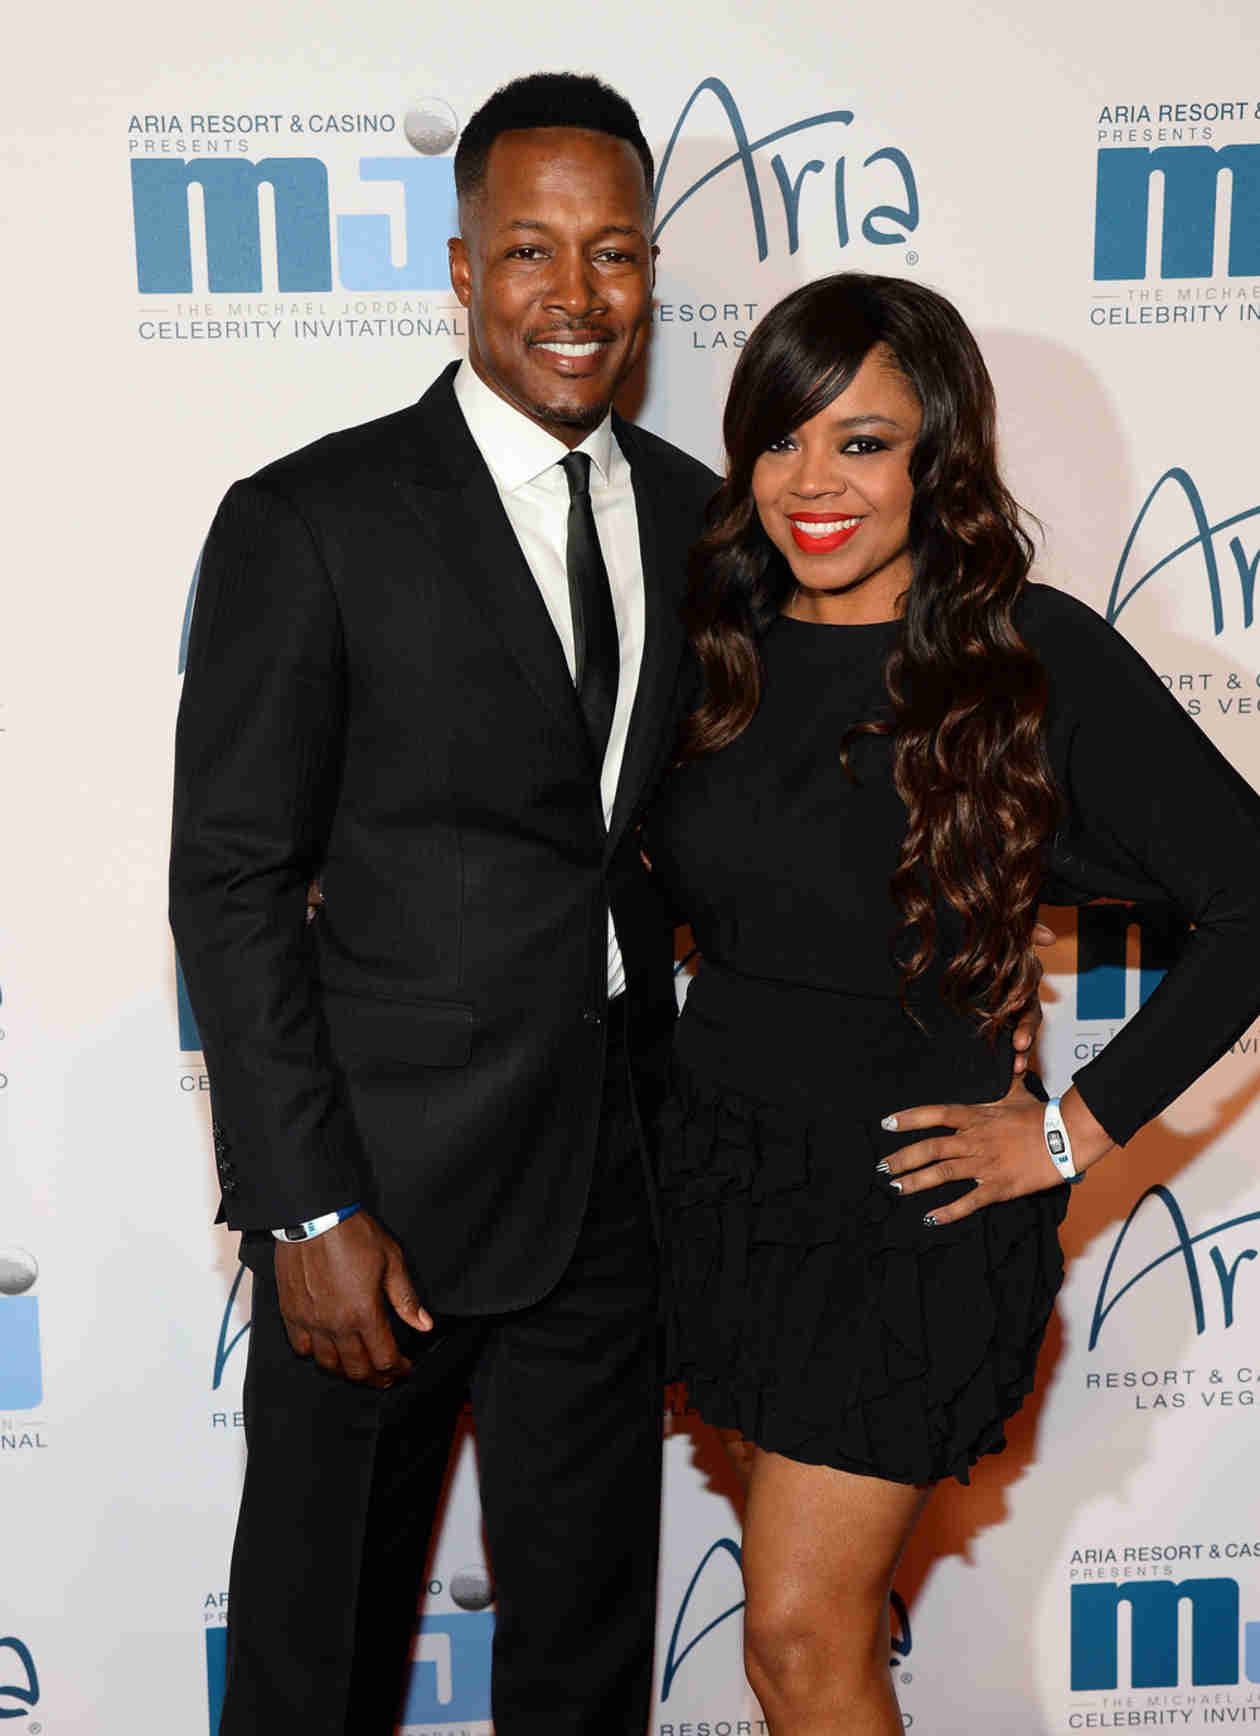 Shanice and Flex Alexander Are Coming to TV With Reality Special (VIDEO)